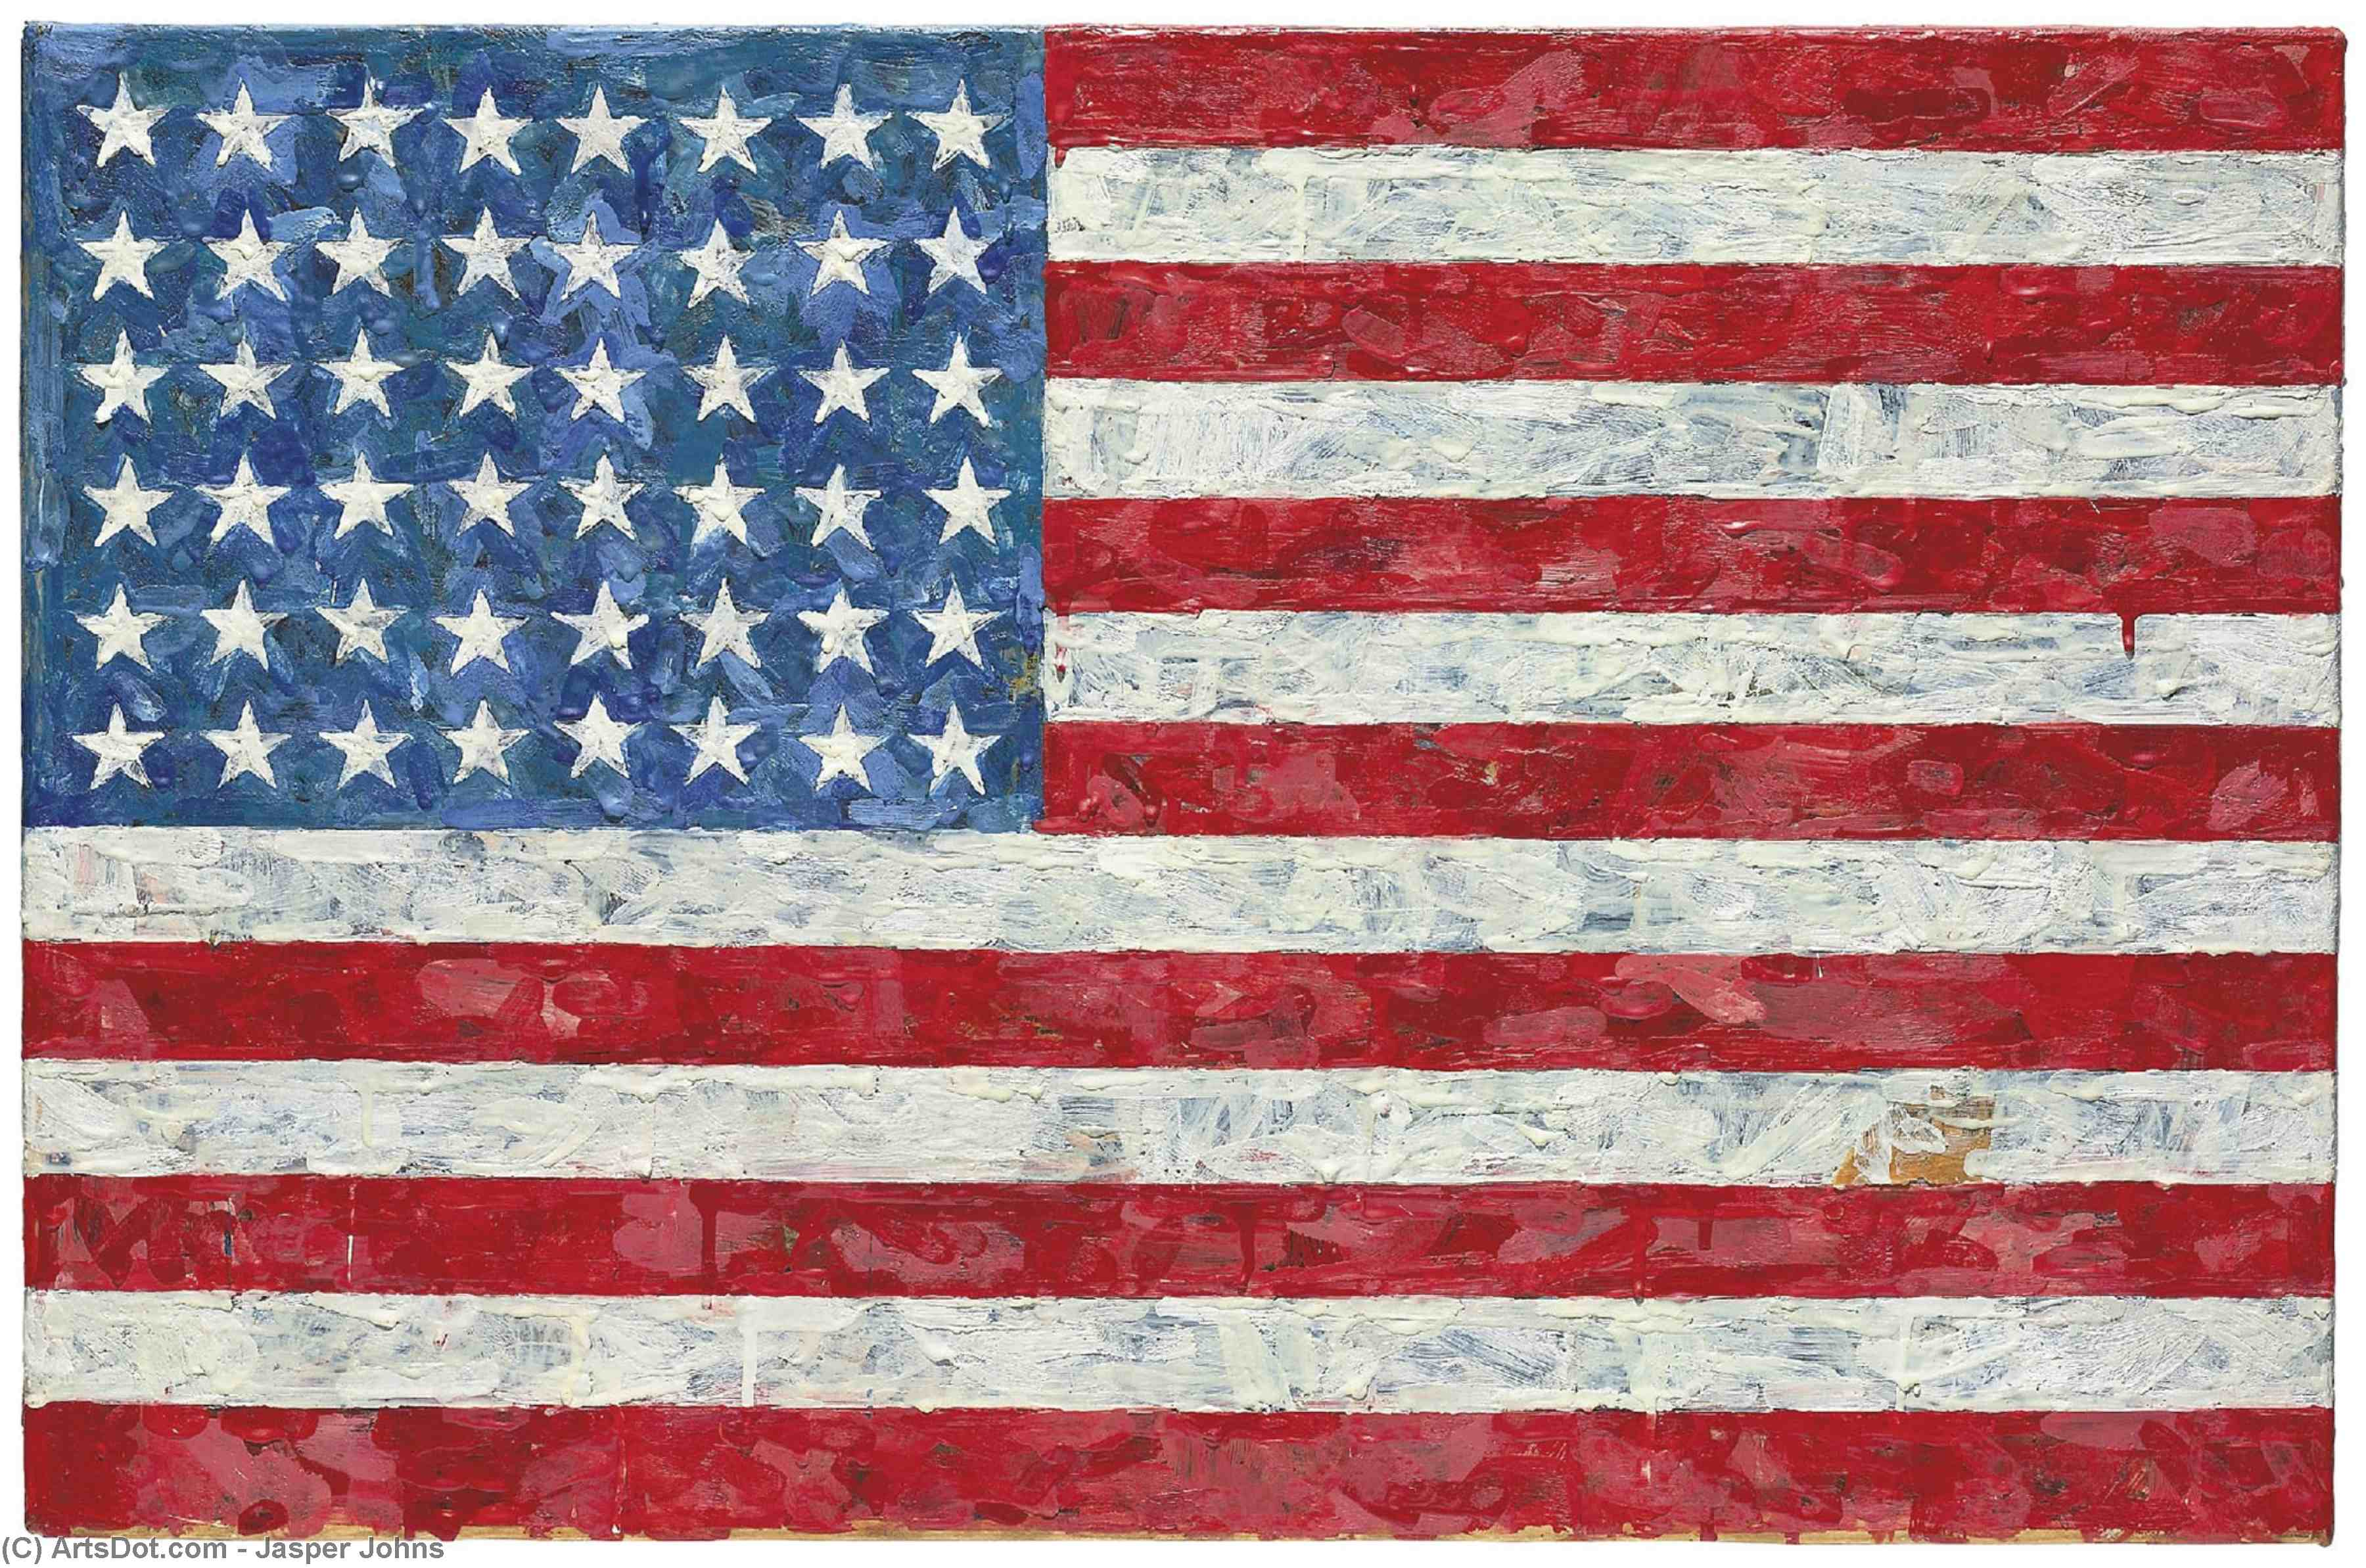 Wikioo.org - The Encyclopedia of Fine Arts - Painting, Artwork by Jasper Johns - Flag